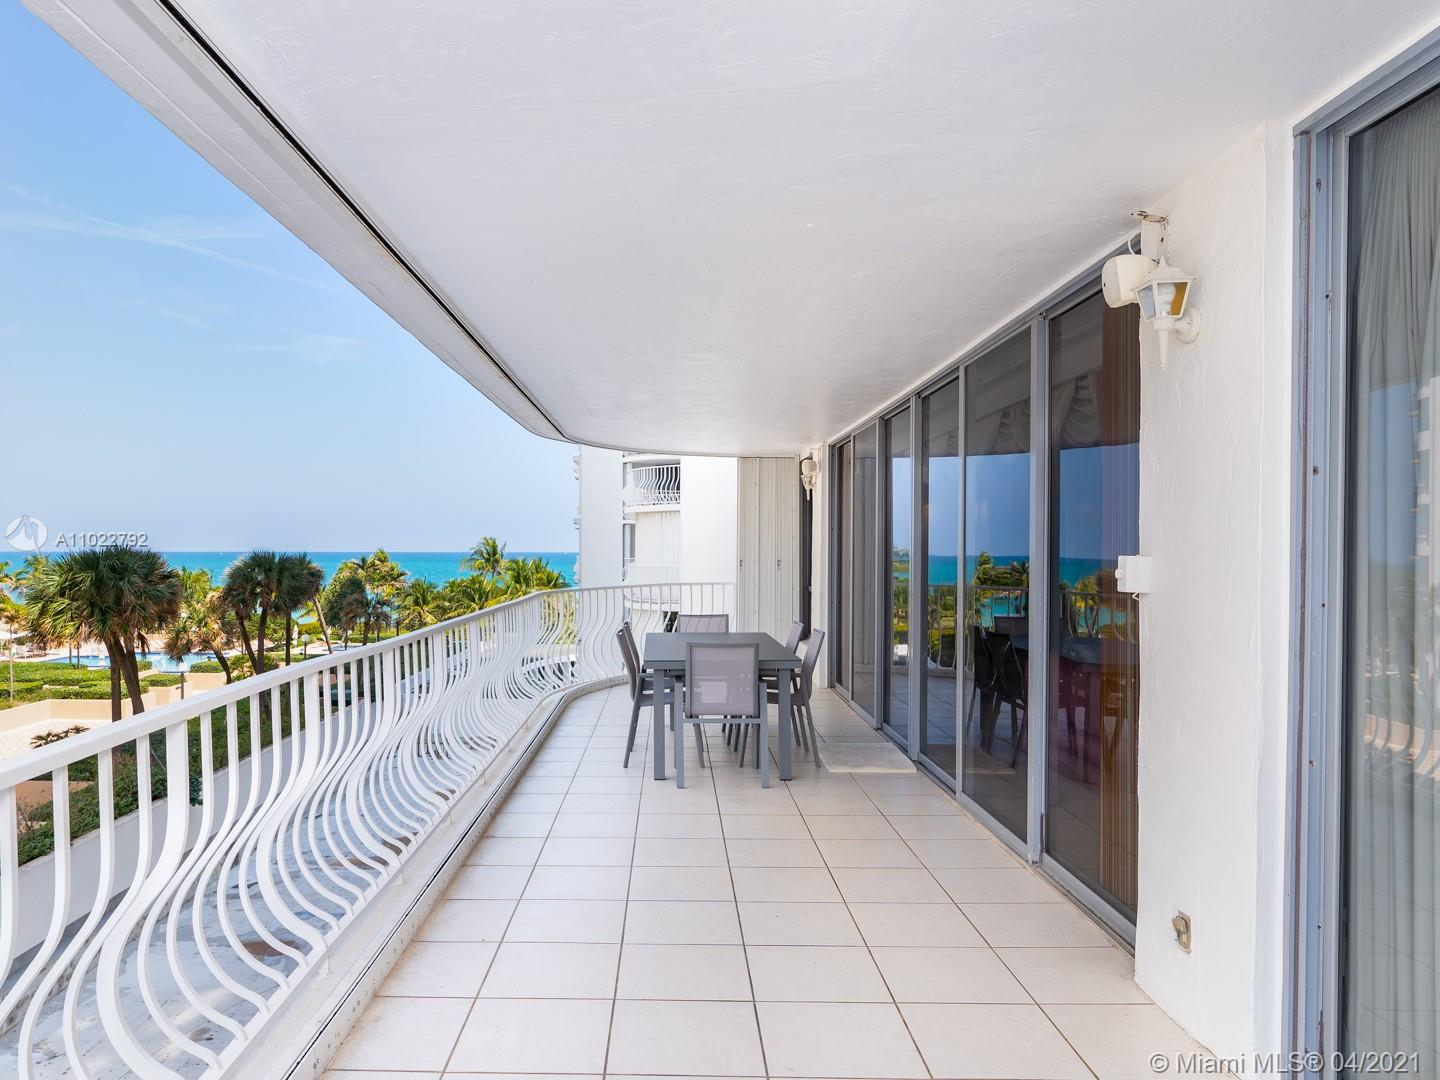 A 2 bedrooms and 3 baths unit in prestigious Bal Harbour 101 oceanfront building. A rare find, sold completely turnkey. A spacious 2540 sq ' plus a 400 sq ft terrace that overlooks garden and ocean view. The building has just completed extensive, STUNNING remodeling throughout, including lobby , pool area , restaurant and fully equipped gym. The 101 building has every deluxe amenity with an outstanding restaurant ,that delivers to unit and the beach.